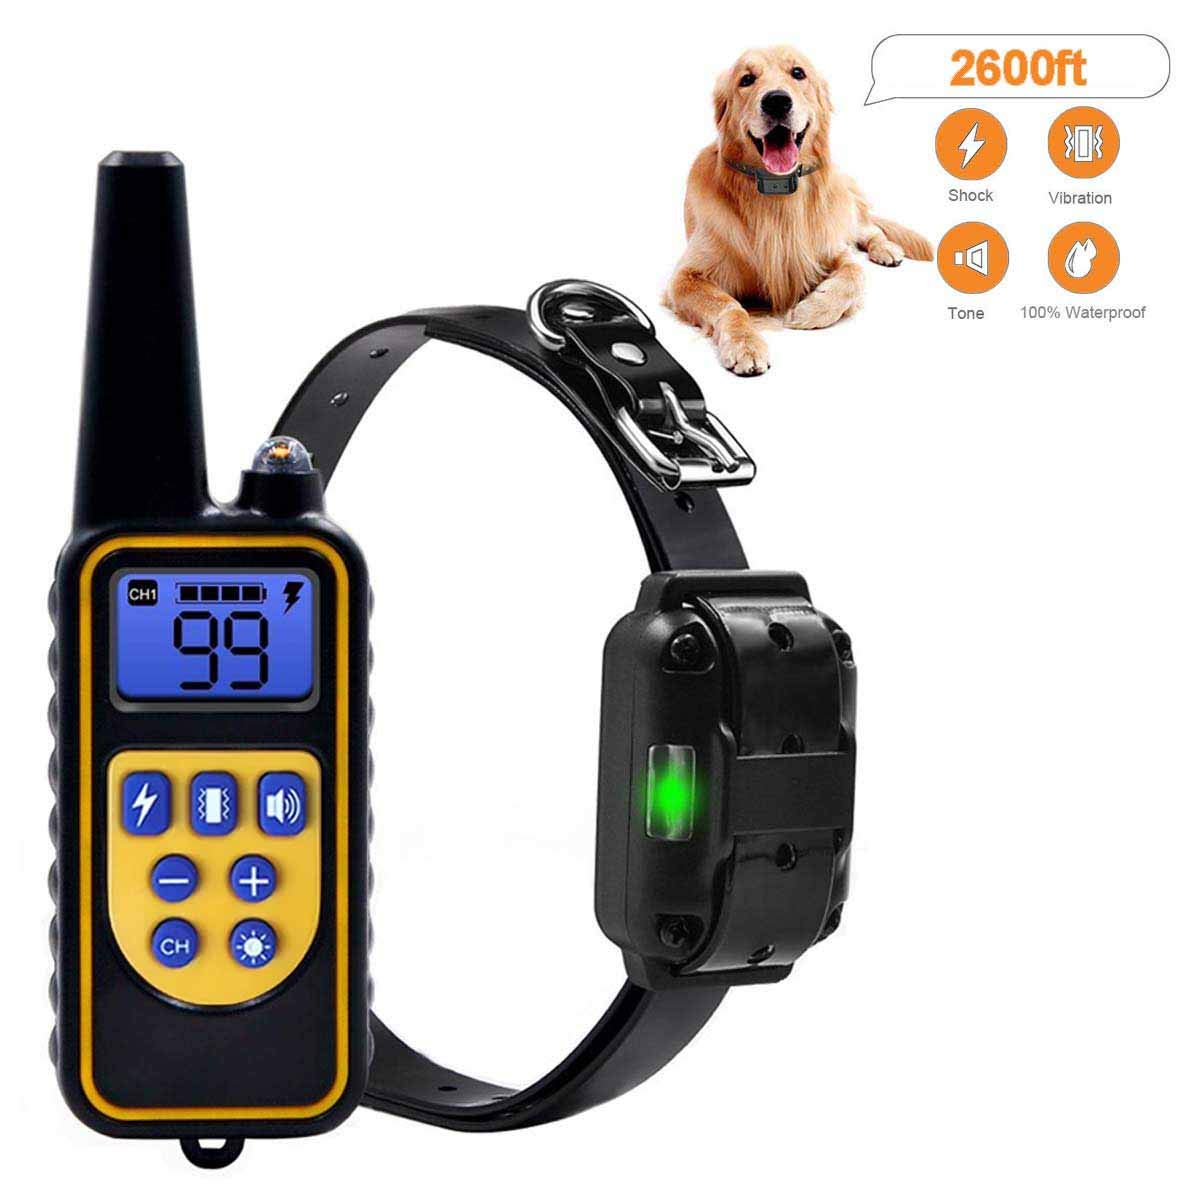 Nice Dream Dog Training Collar, 2600ft Remote Dog Shock Collar, IPX7 Waterproof and Rechargeable bark Collar with 0 99 Levels Beep Vibration Shock Collar for Small Medium Large Dogs